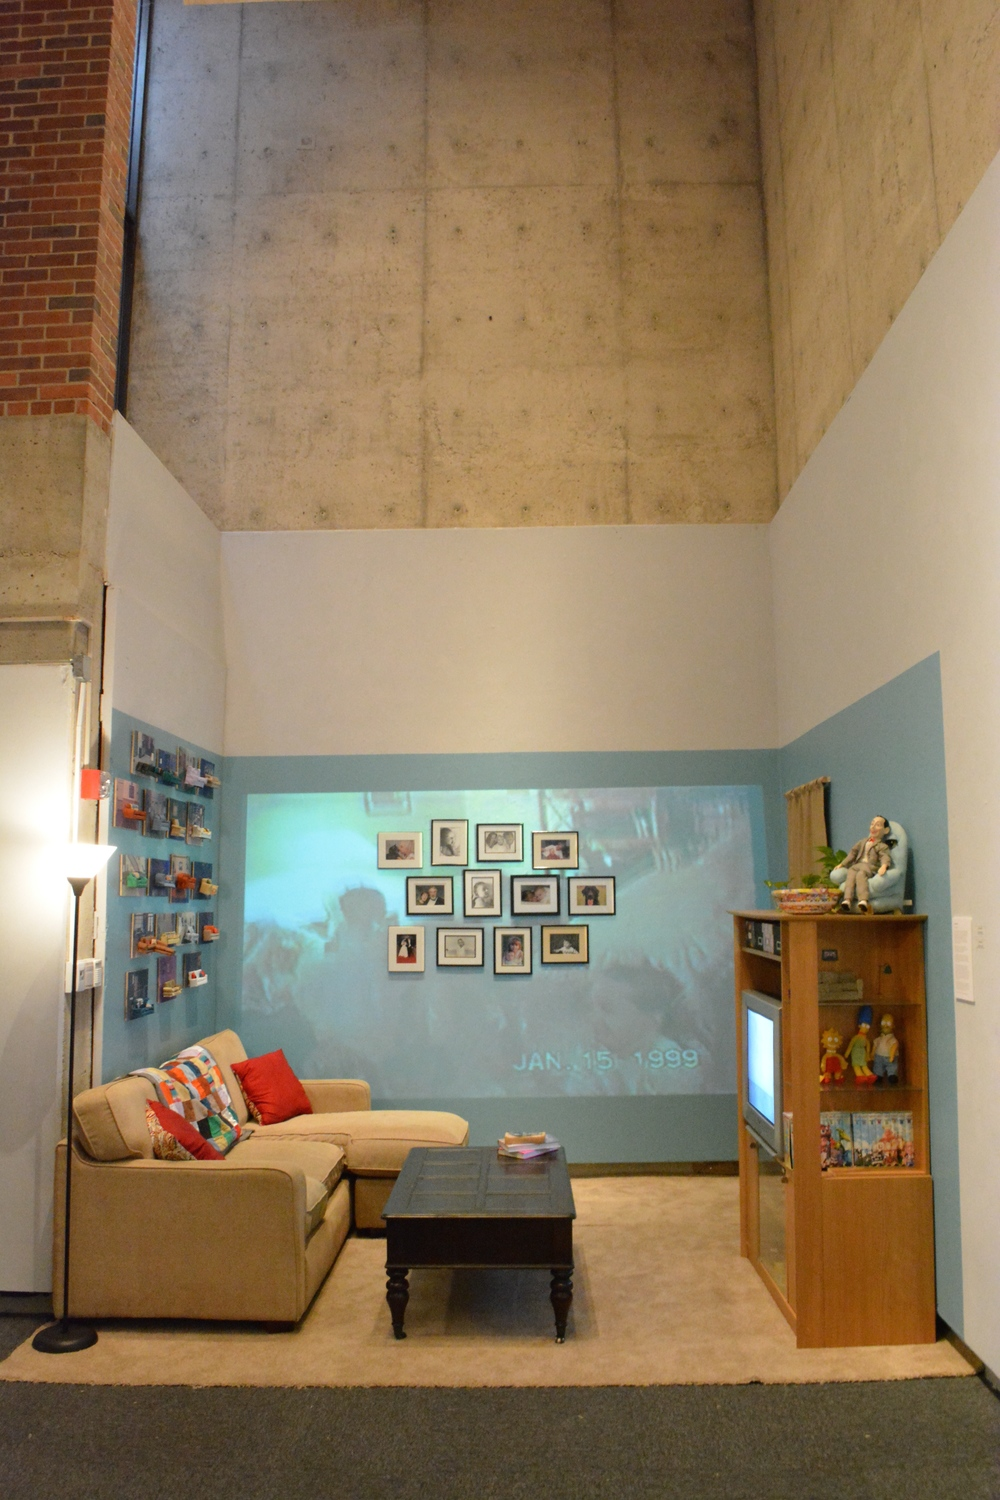 Life & Living Room , Cassidy Routh, Video, Installation, Screen print and soft sculpture, 2015  BFA Thesis Work Spring 2015,Florida State UniversityMuseum of Fine Arts